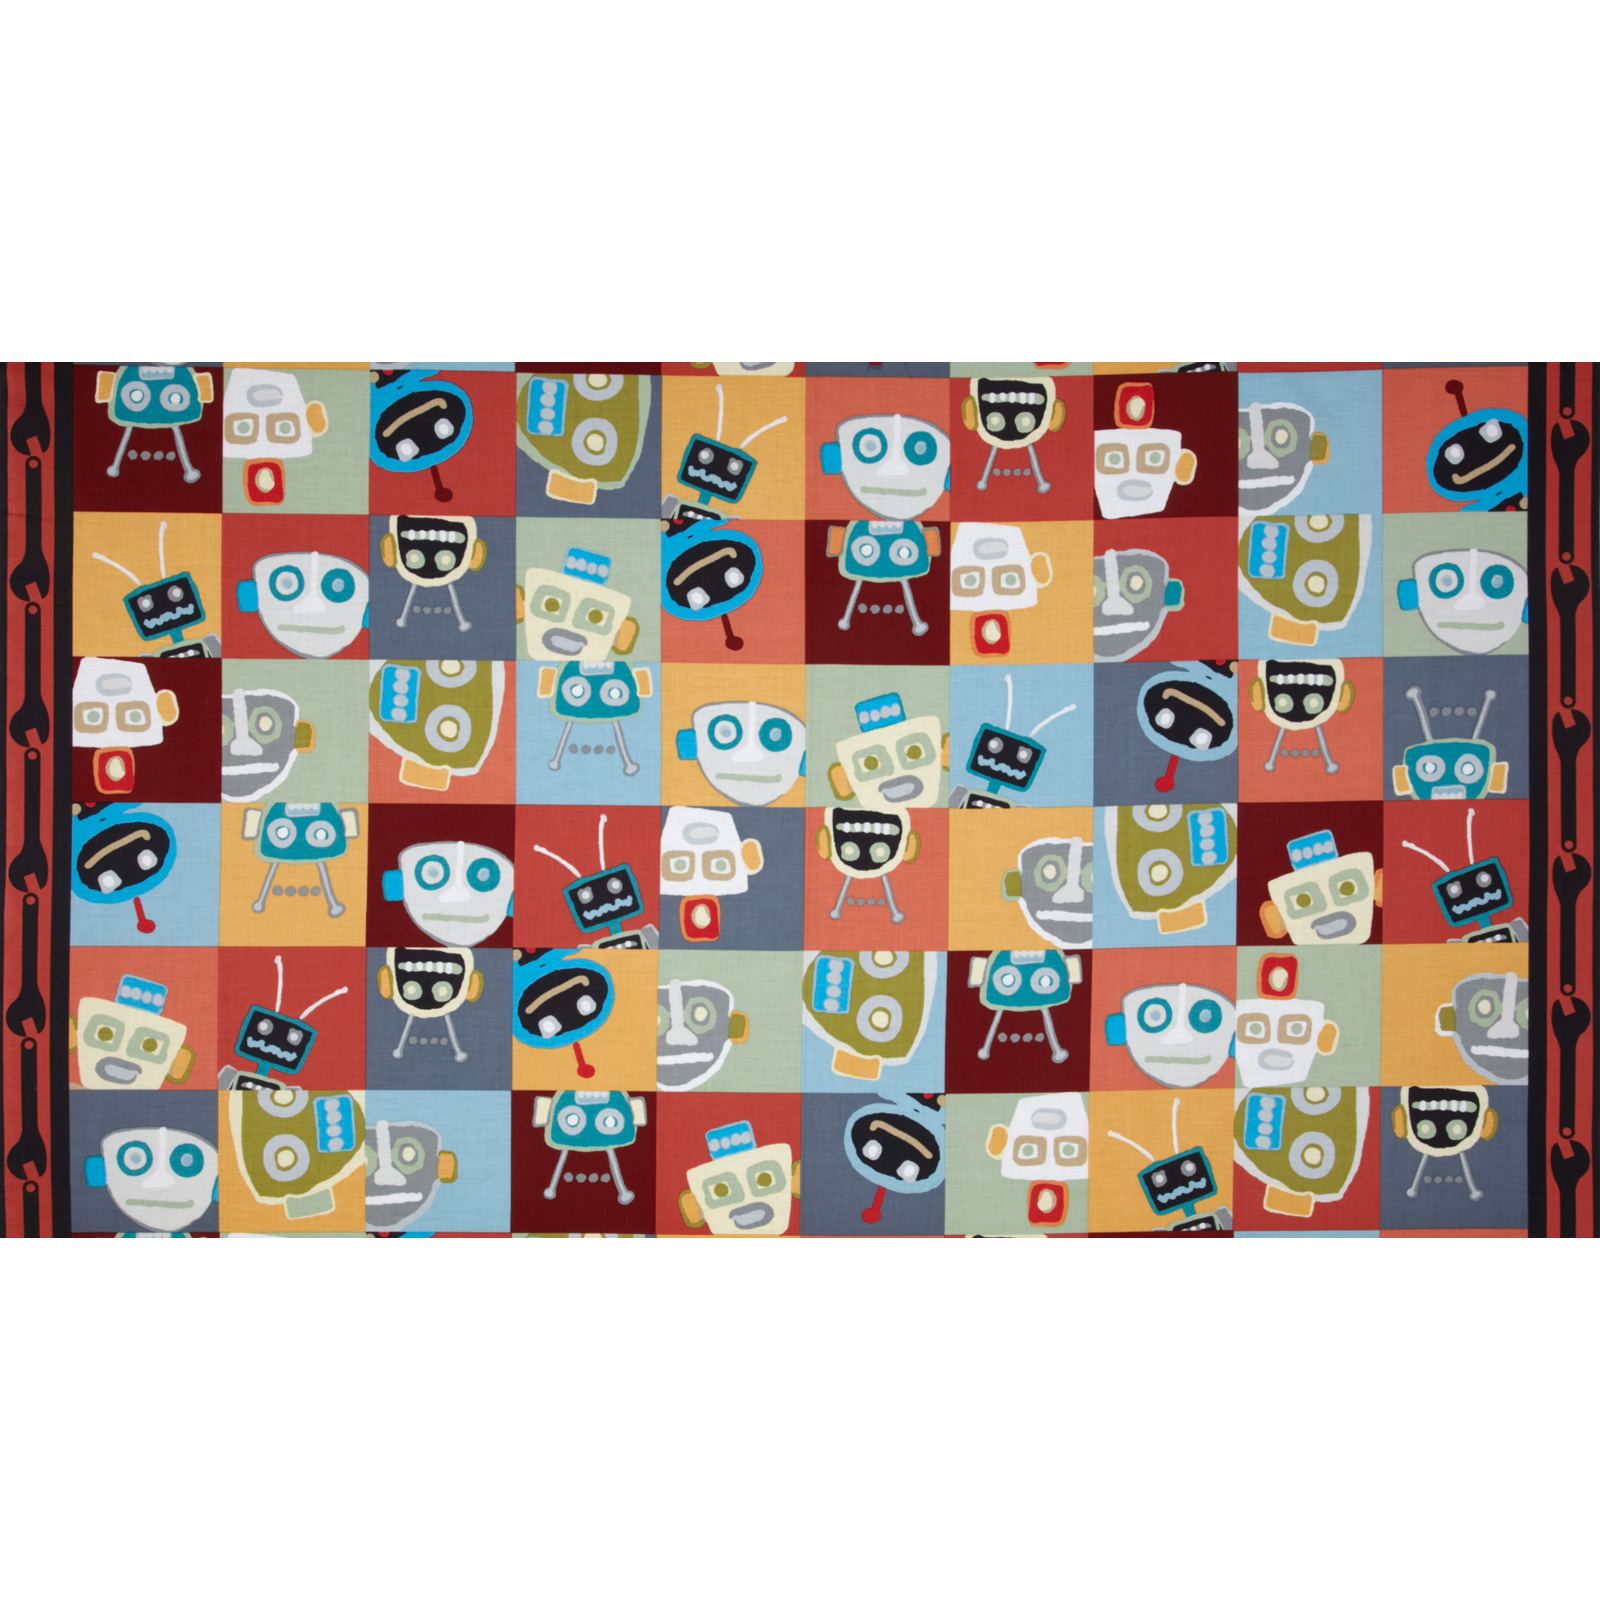 Mr. Roboto Large Robots Panel Multi Fabric